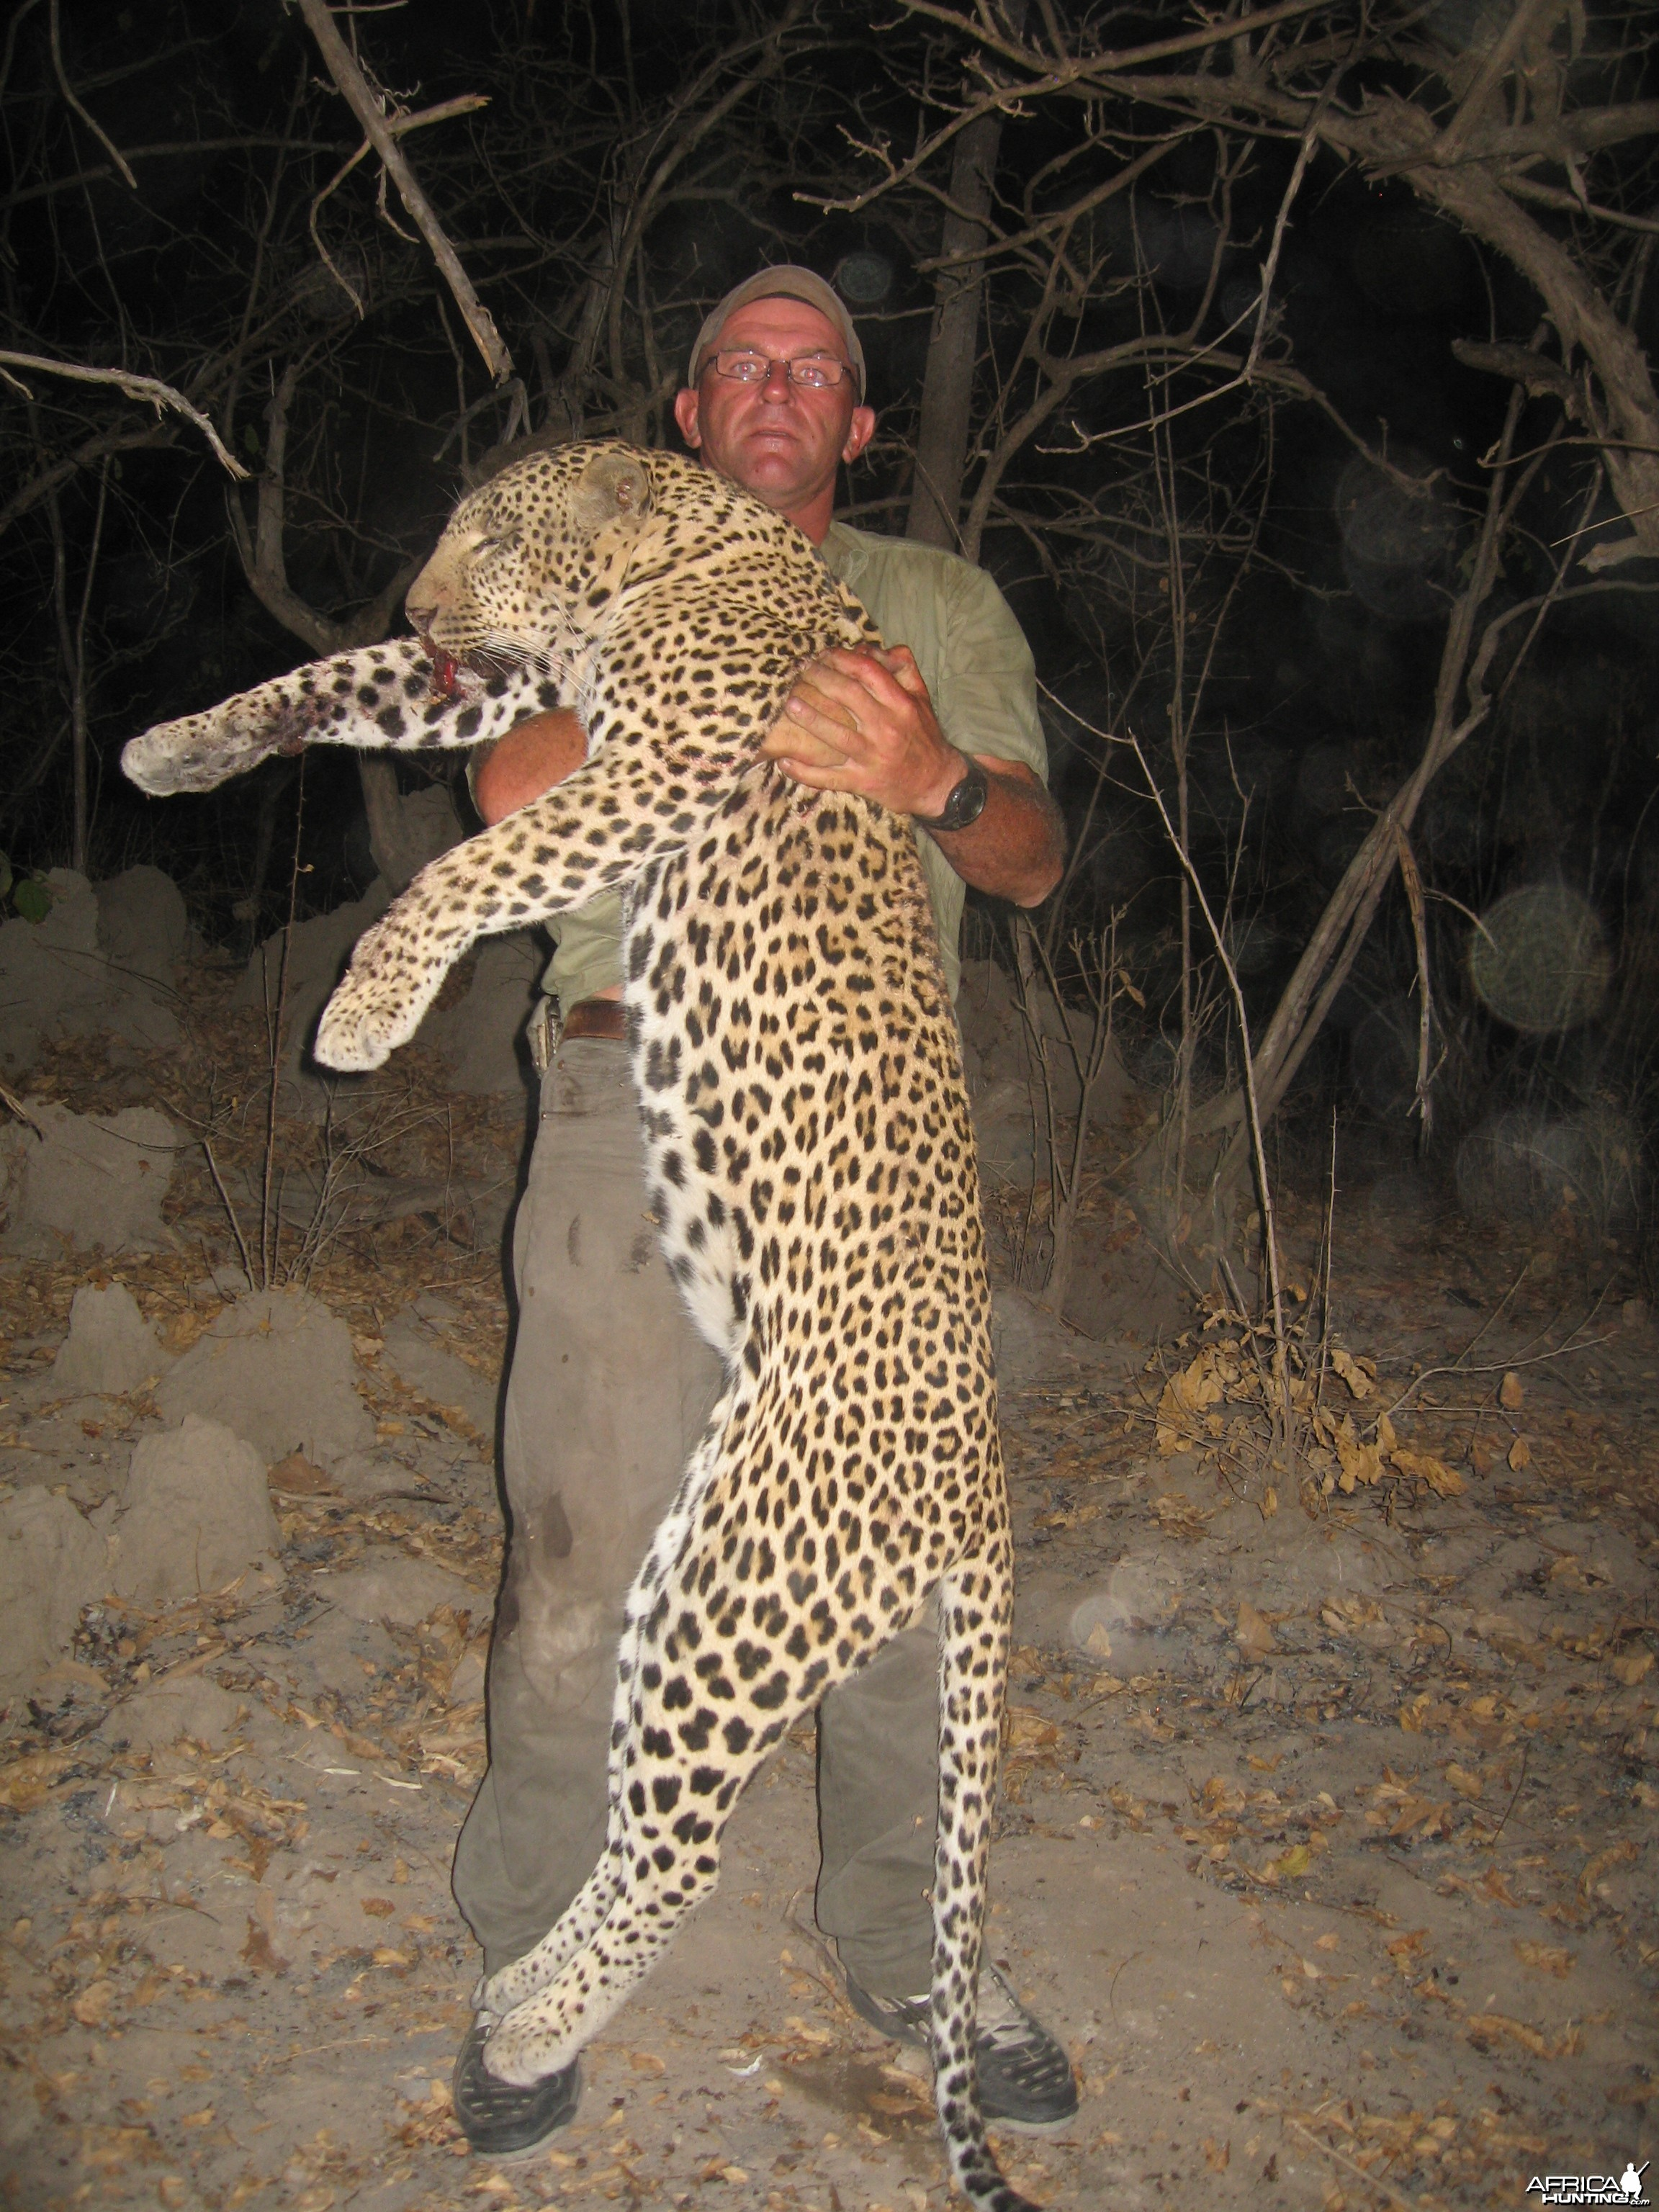 A good Leopard over 7 feet hunted in Tanzania